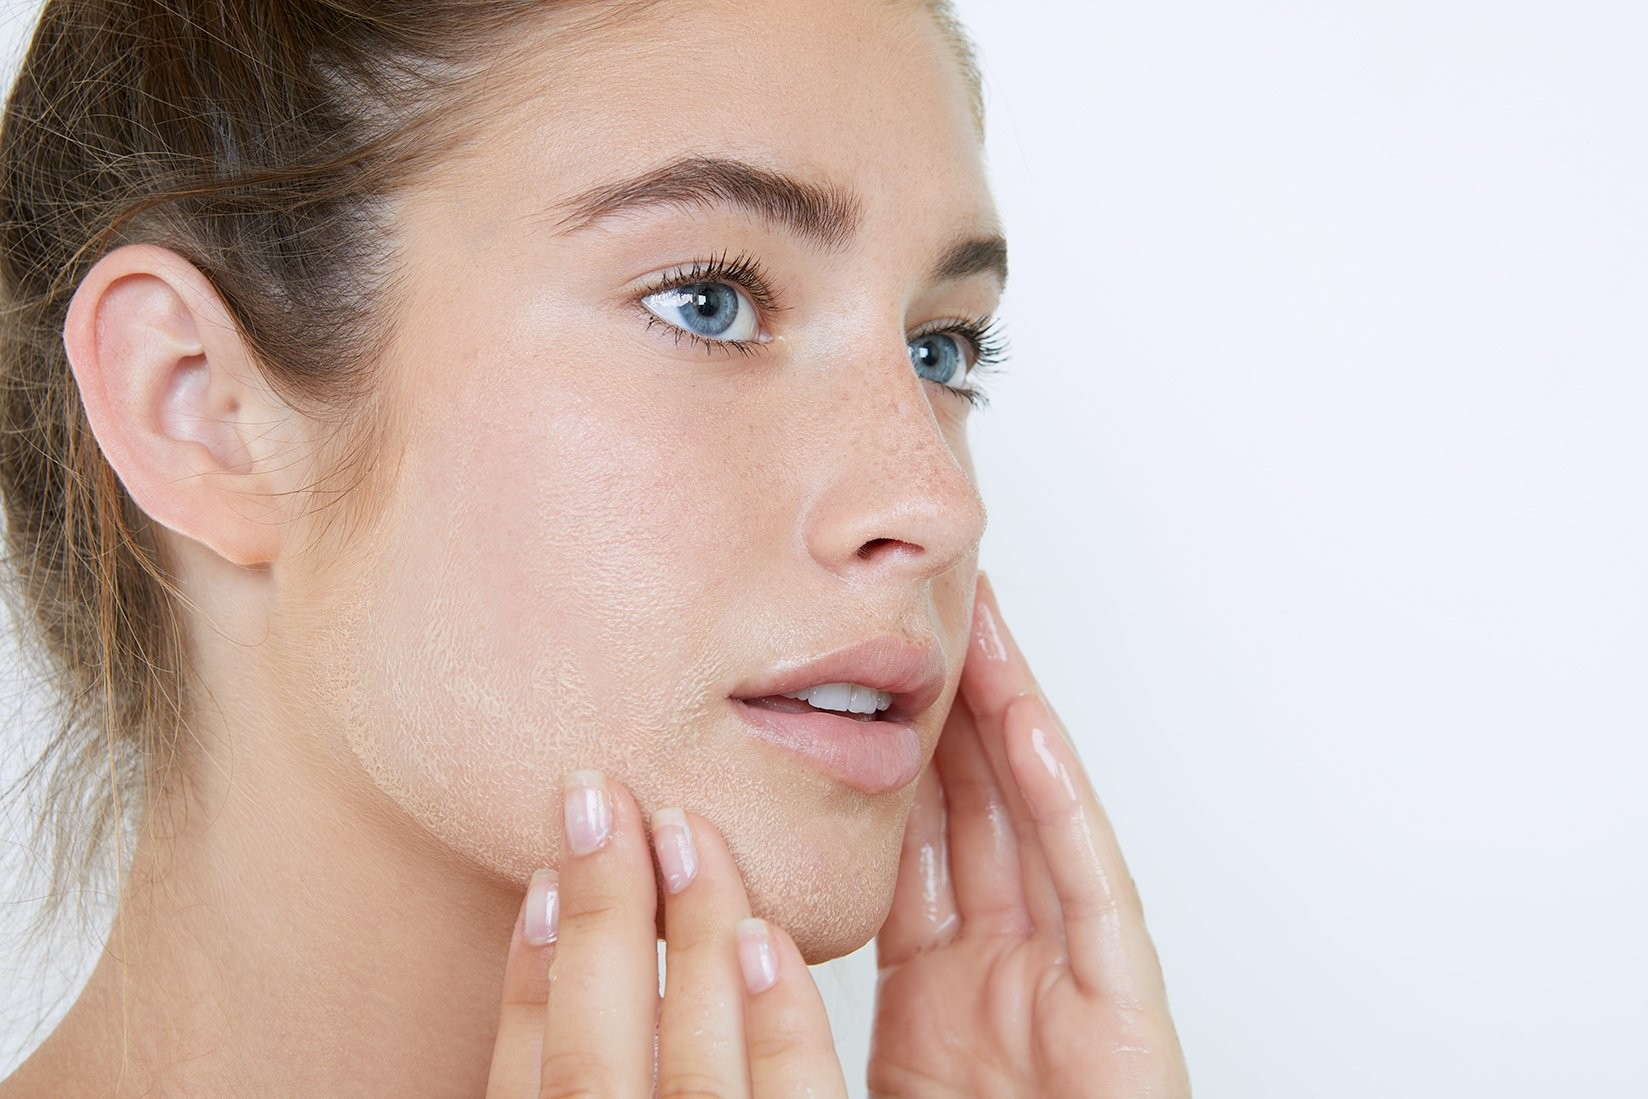 woman cleaning her face whilst touching her face lightly with her finger tips.